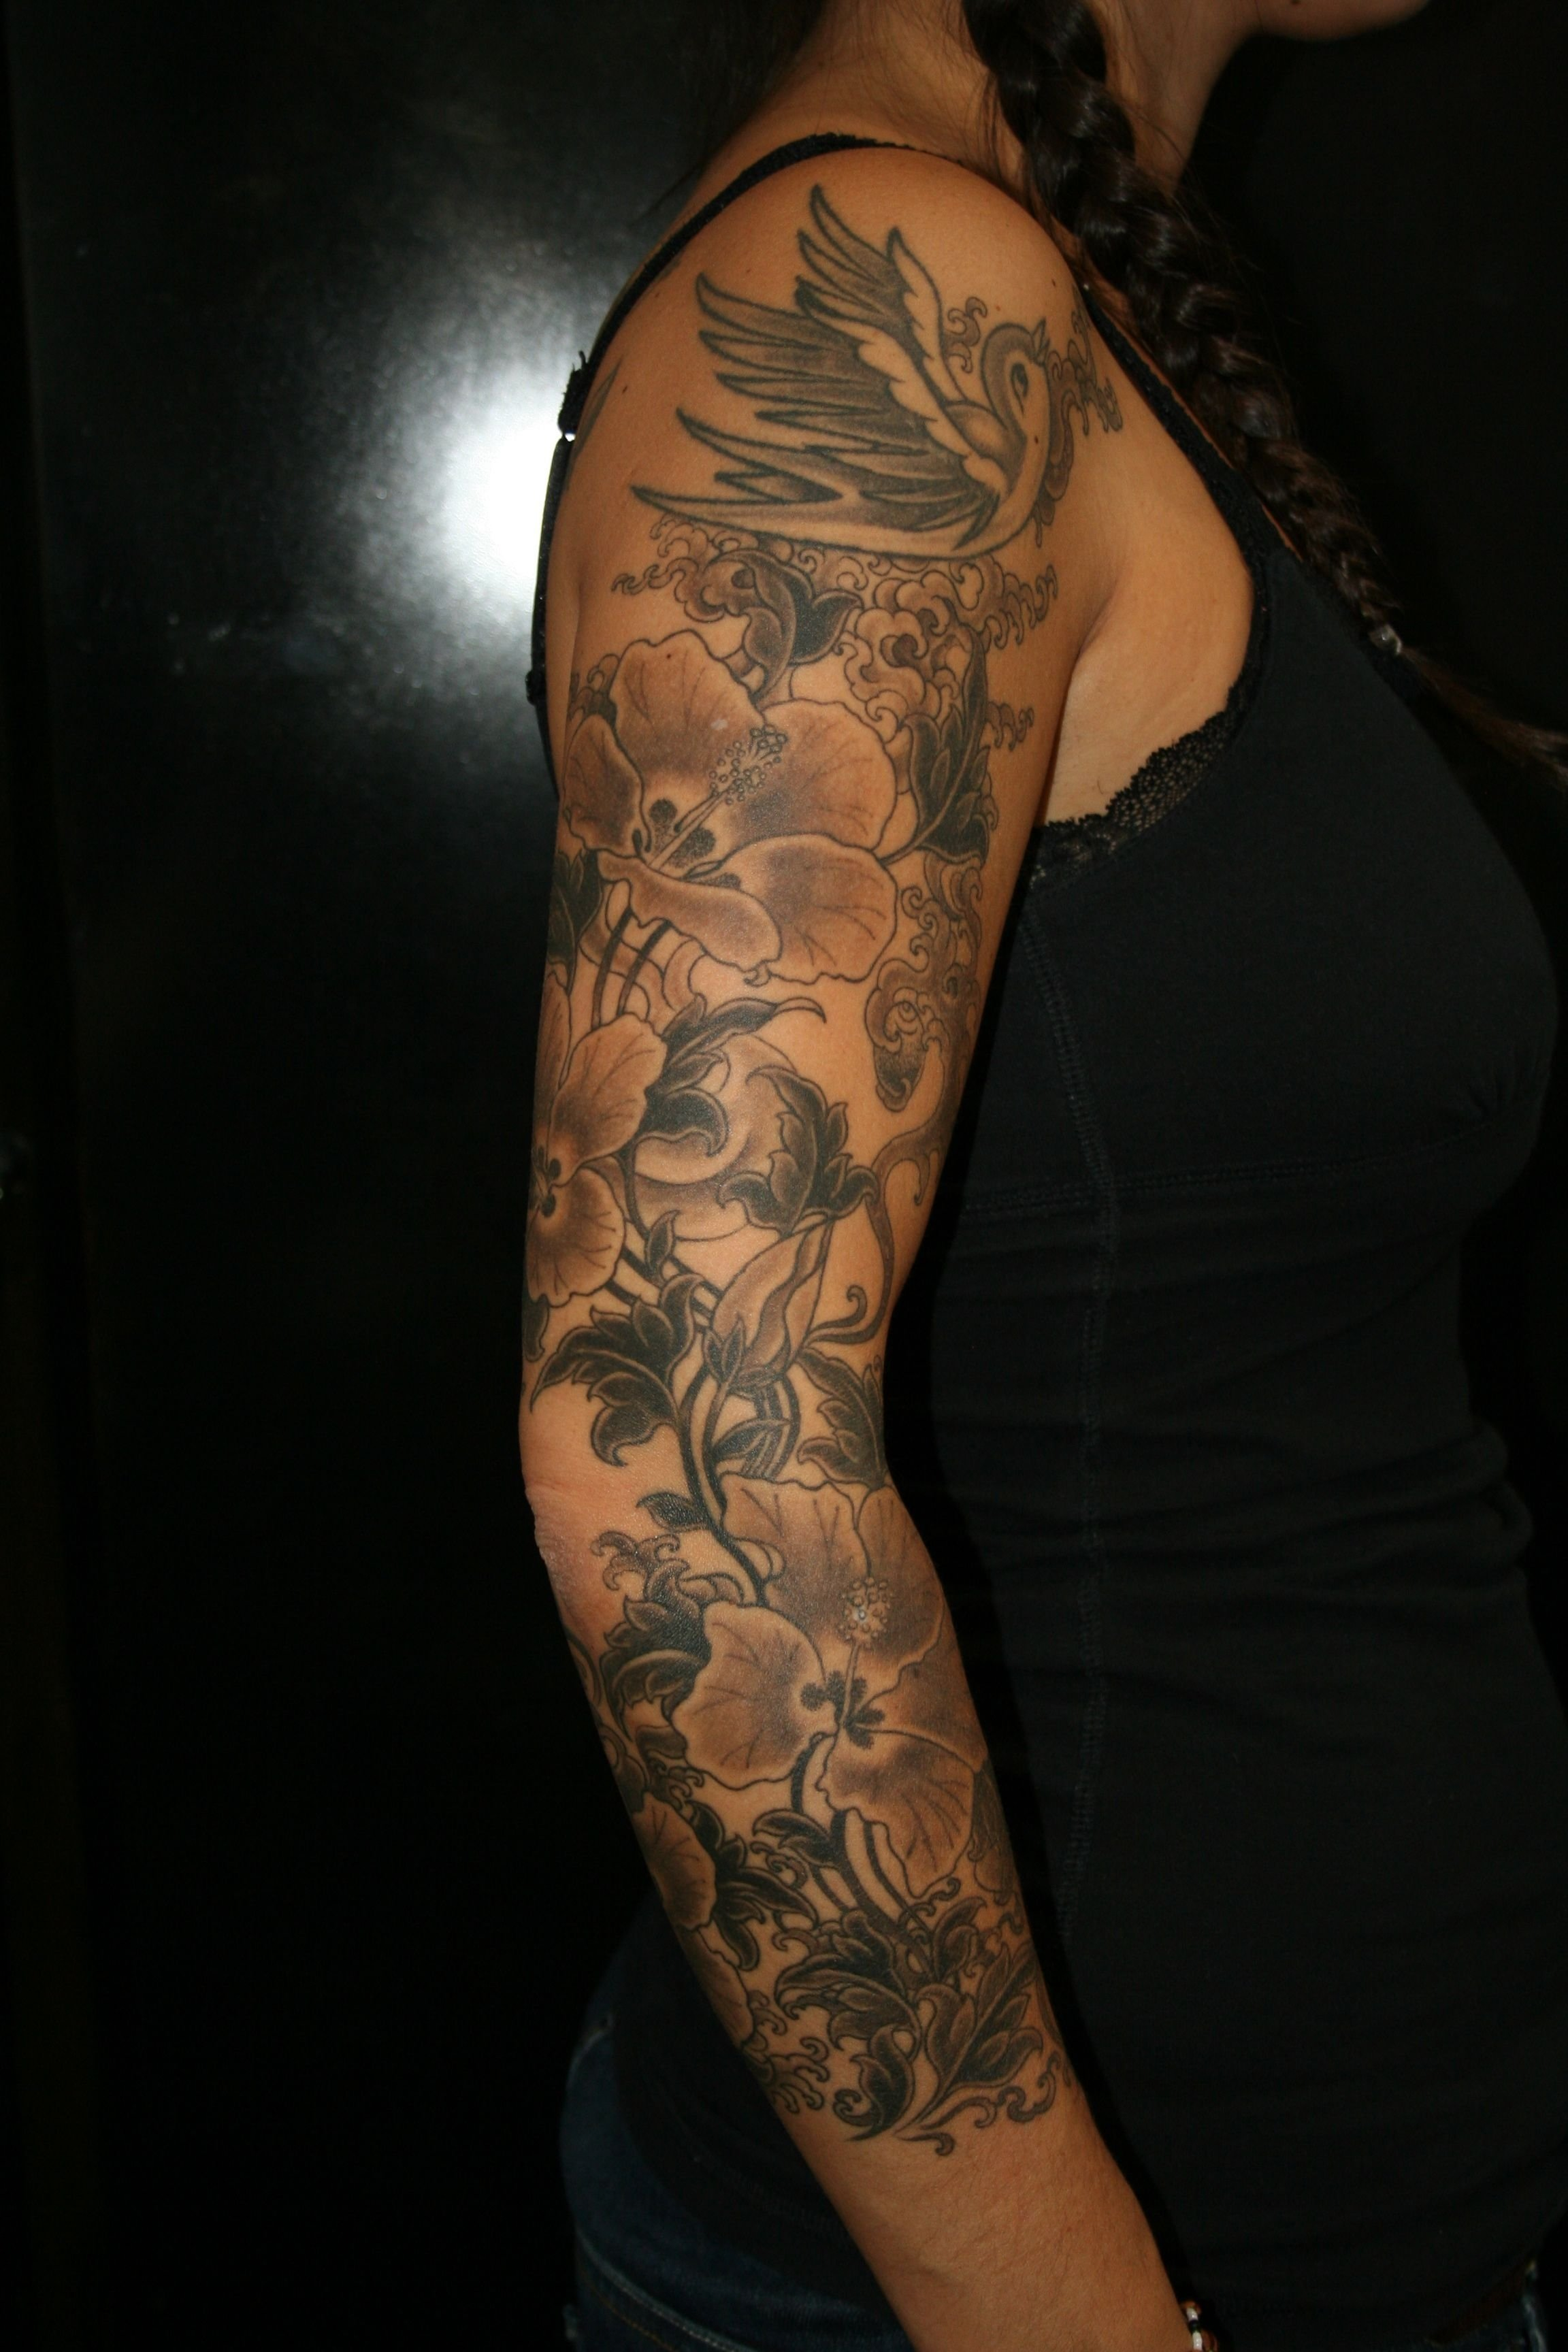 10 Spectacular Sleeve Tattoo Ideas For Girls 25 sleeve tattoos for girls design ideas flower sleeve tattoos 2020